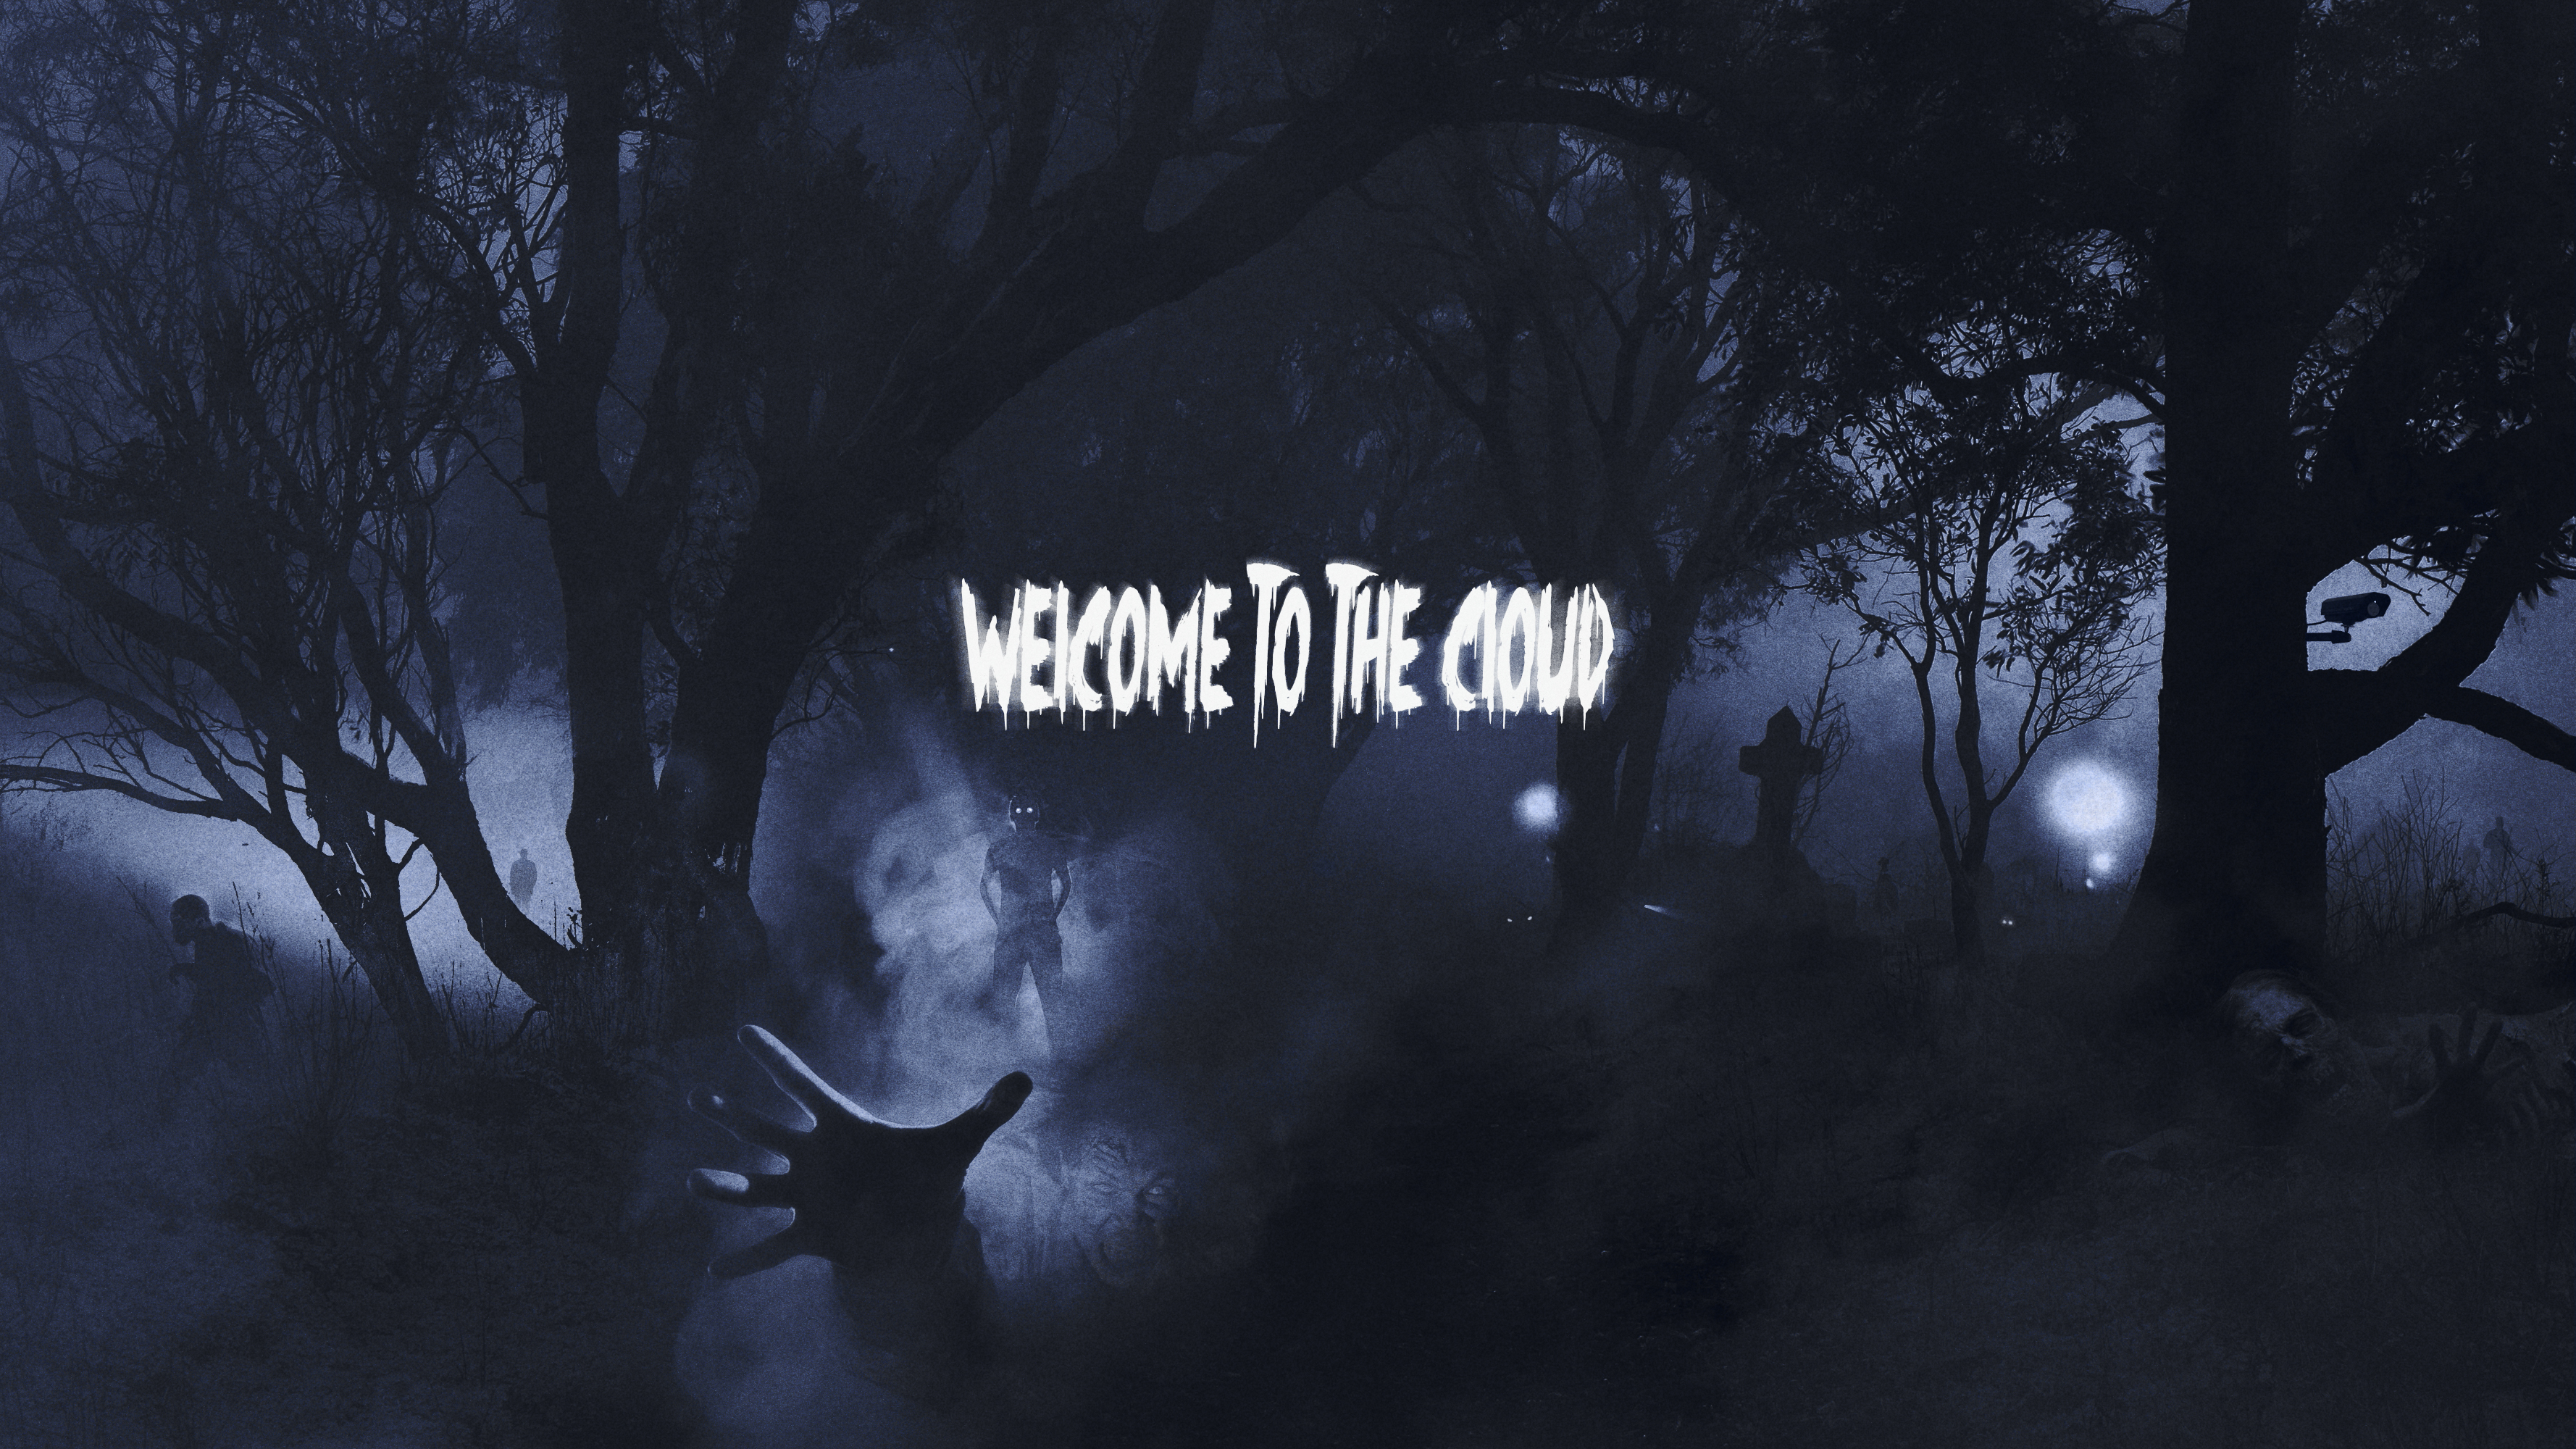 Welcome To The Cloud Computing Fondo De Pantalla Hd Fondo